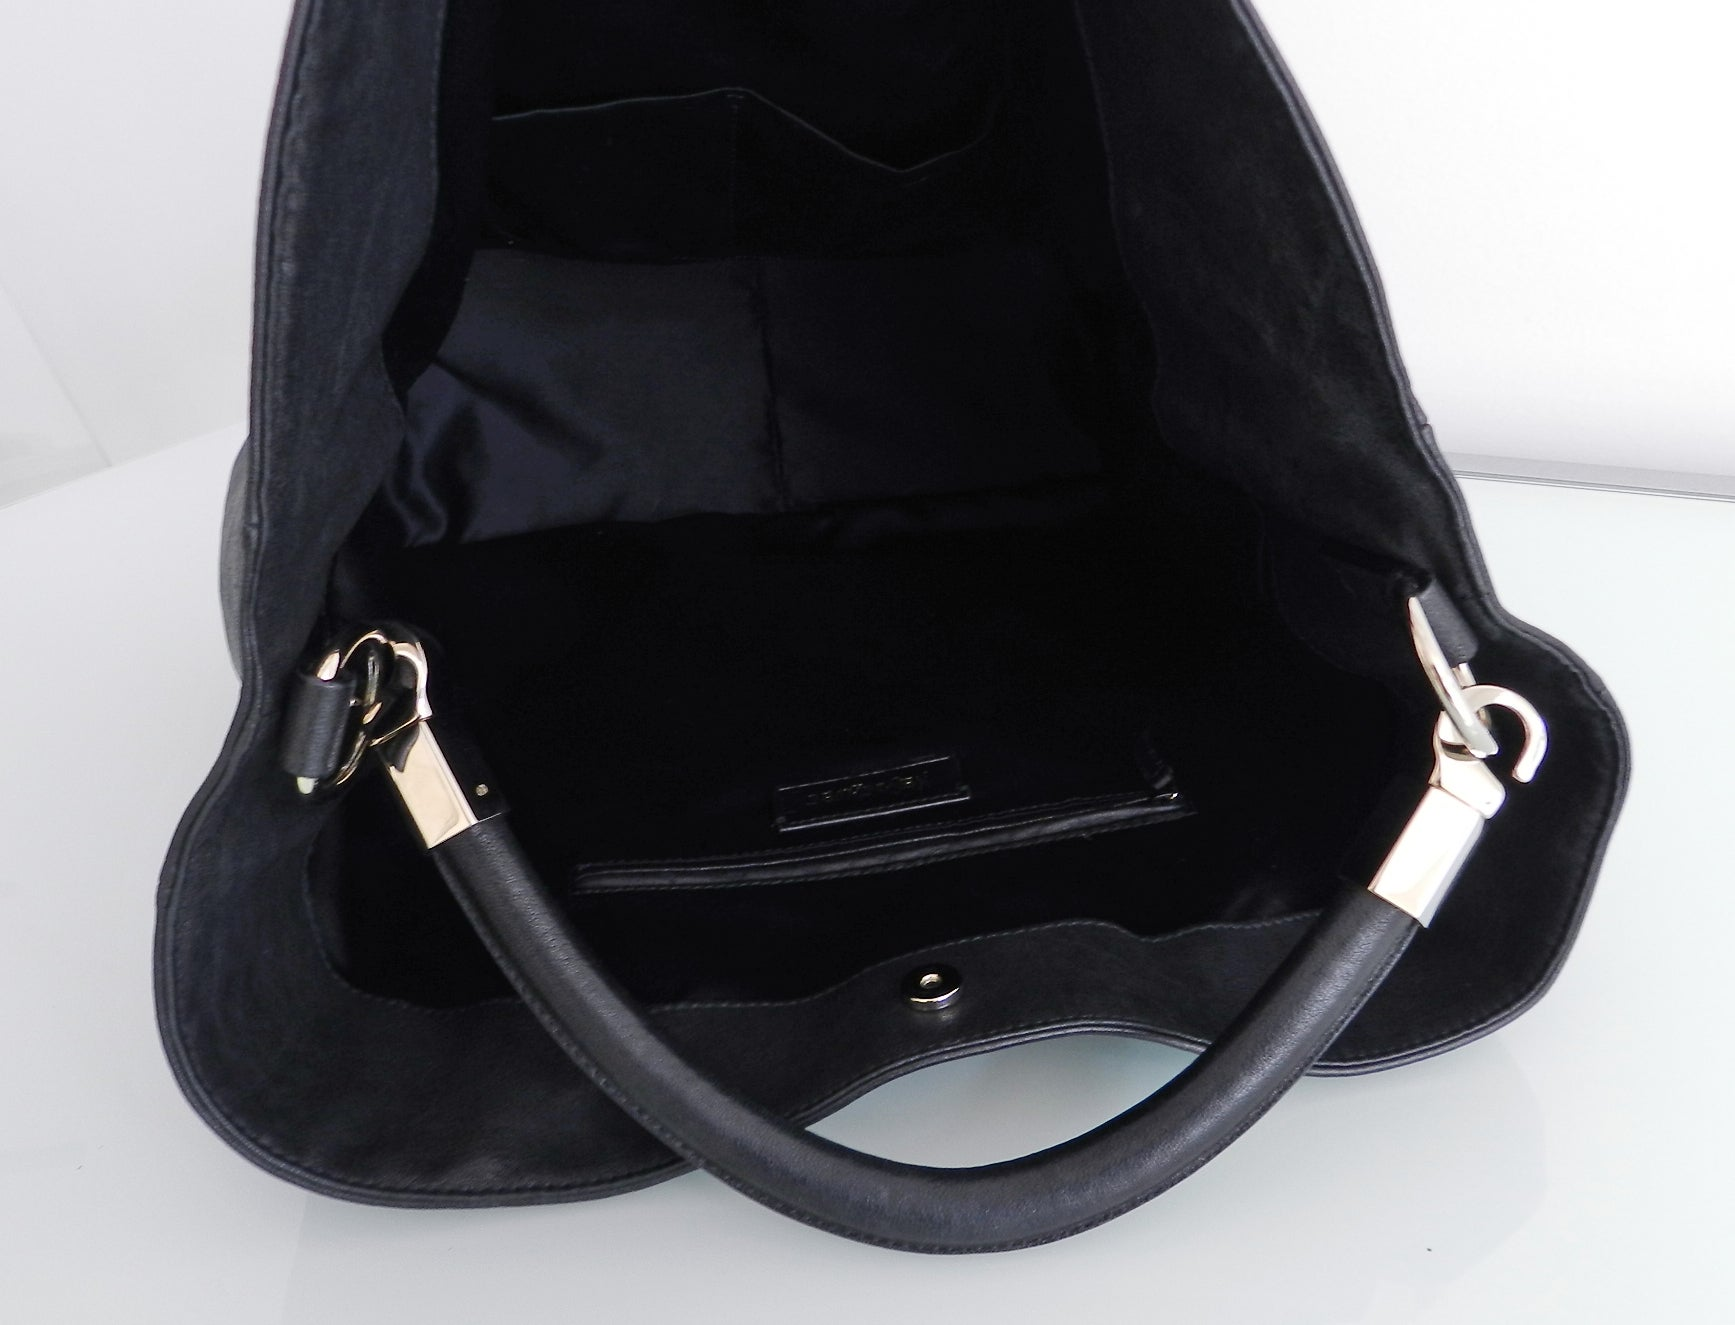 75f84bb66d Yves Saint Laurent Black Roady Tote Bag at 1stdibs